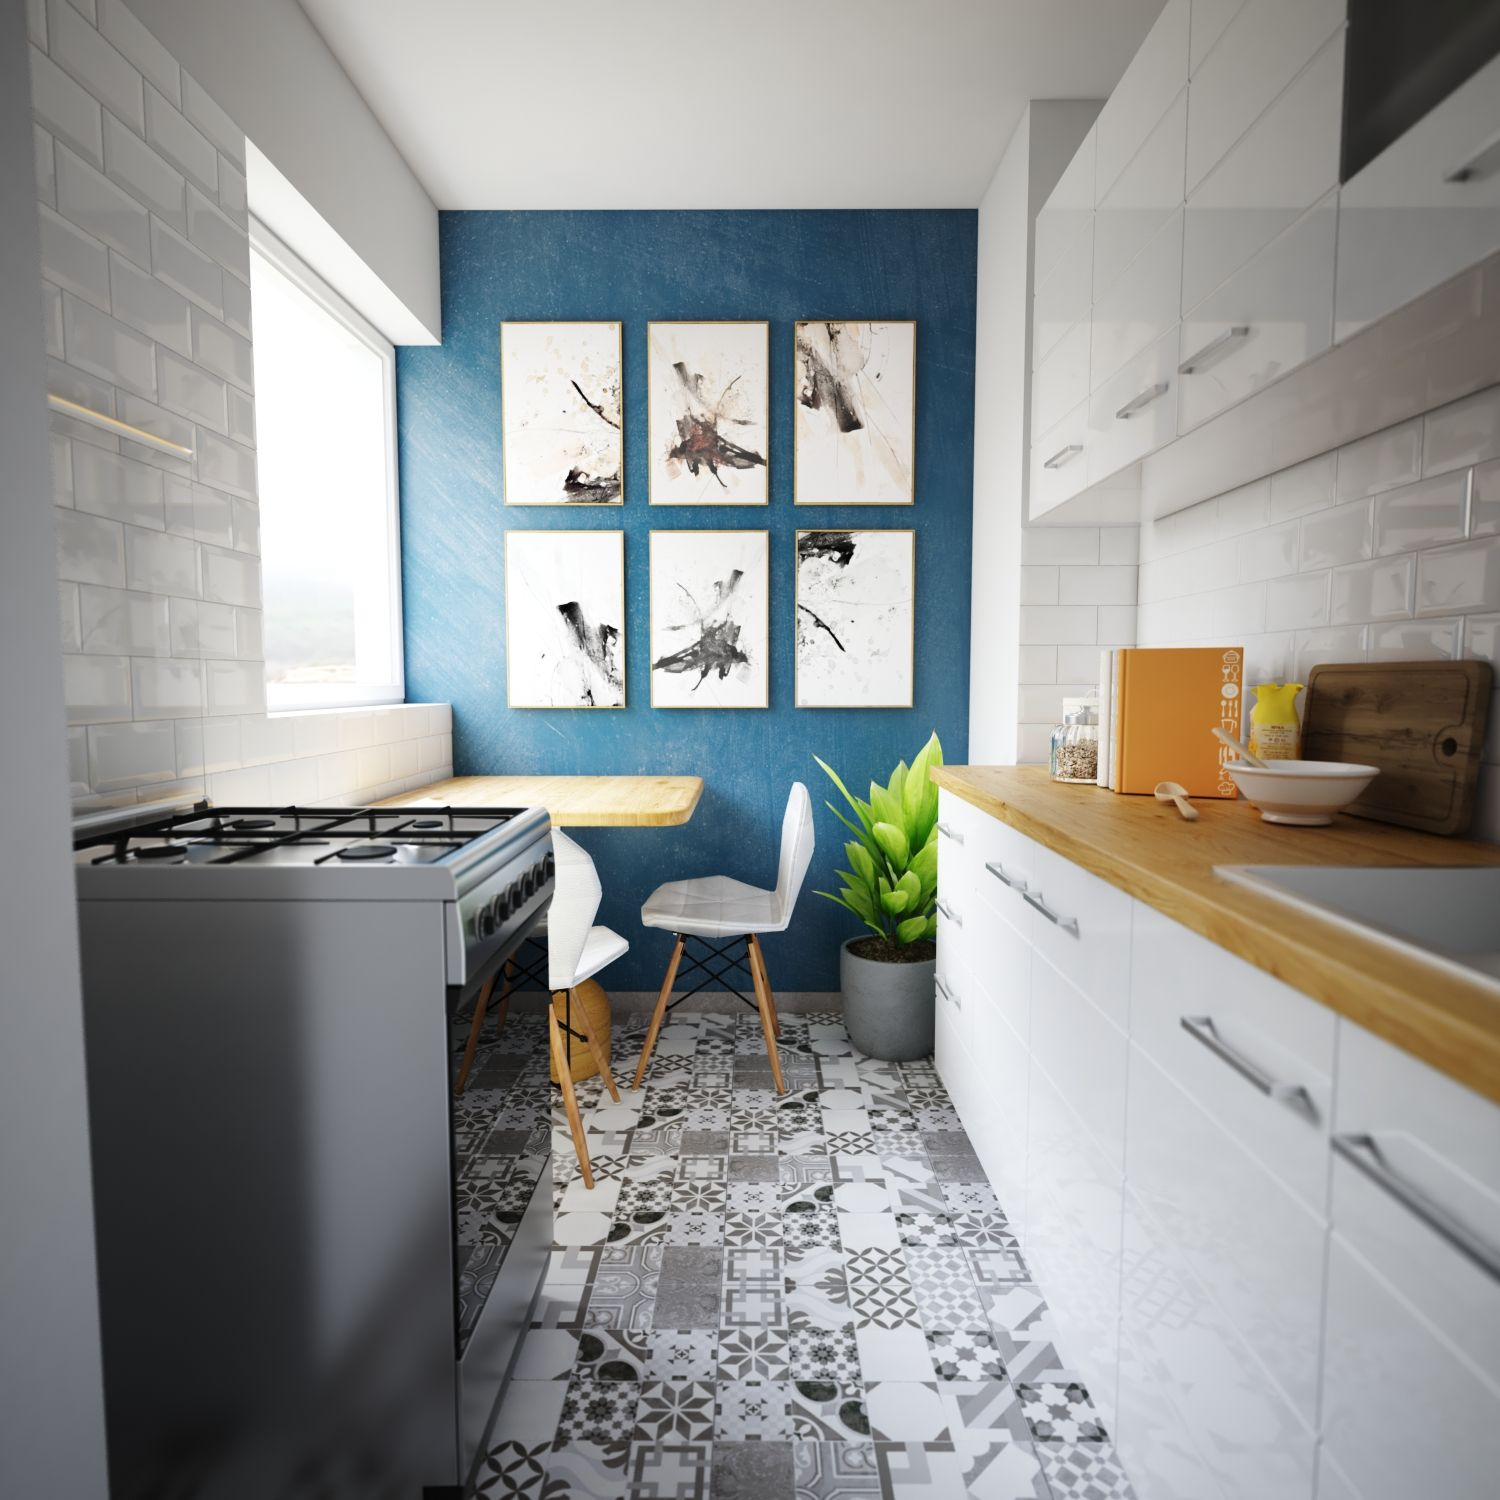 Cgi Render Very Small Kitchen For A Studio Apartment On A Very Tight Budget For A Fiend 1500x1500 Https Small Kitchen Apartment Kitchen Compact Kitchen